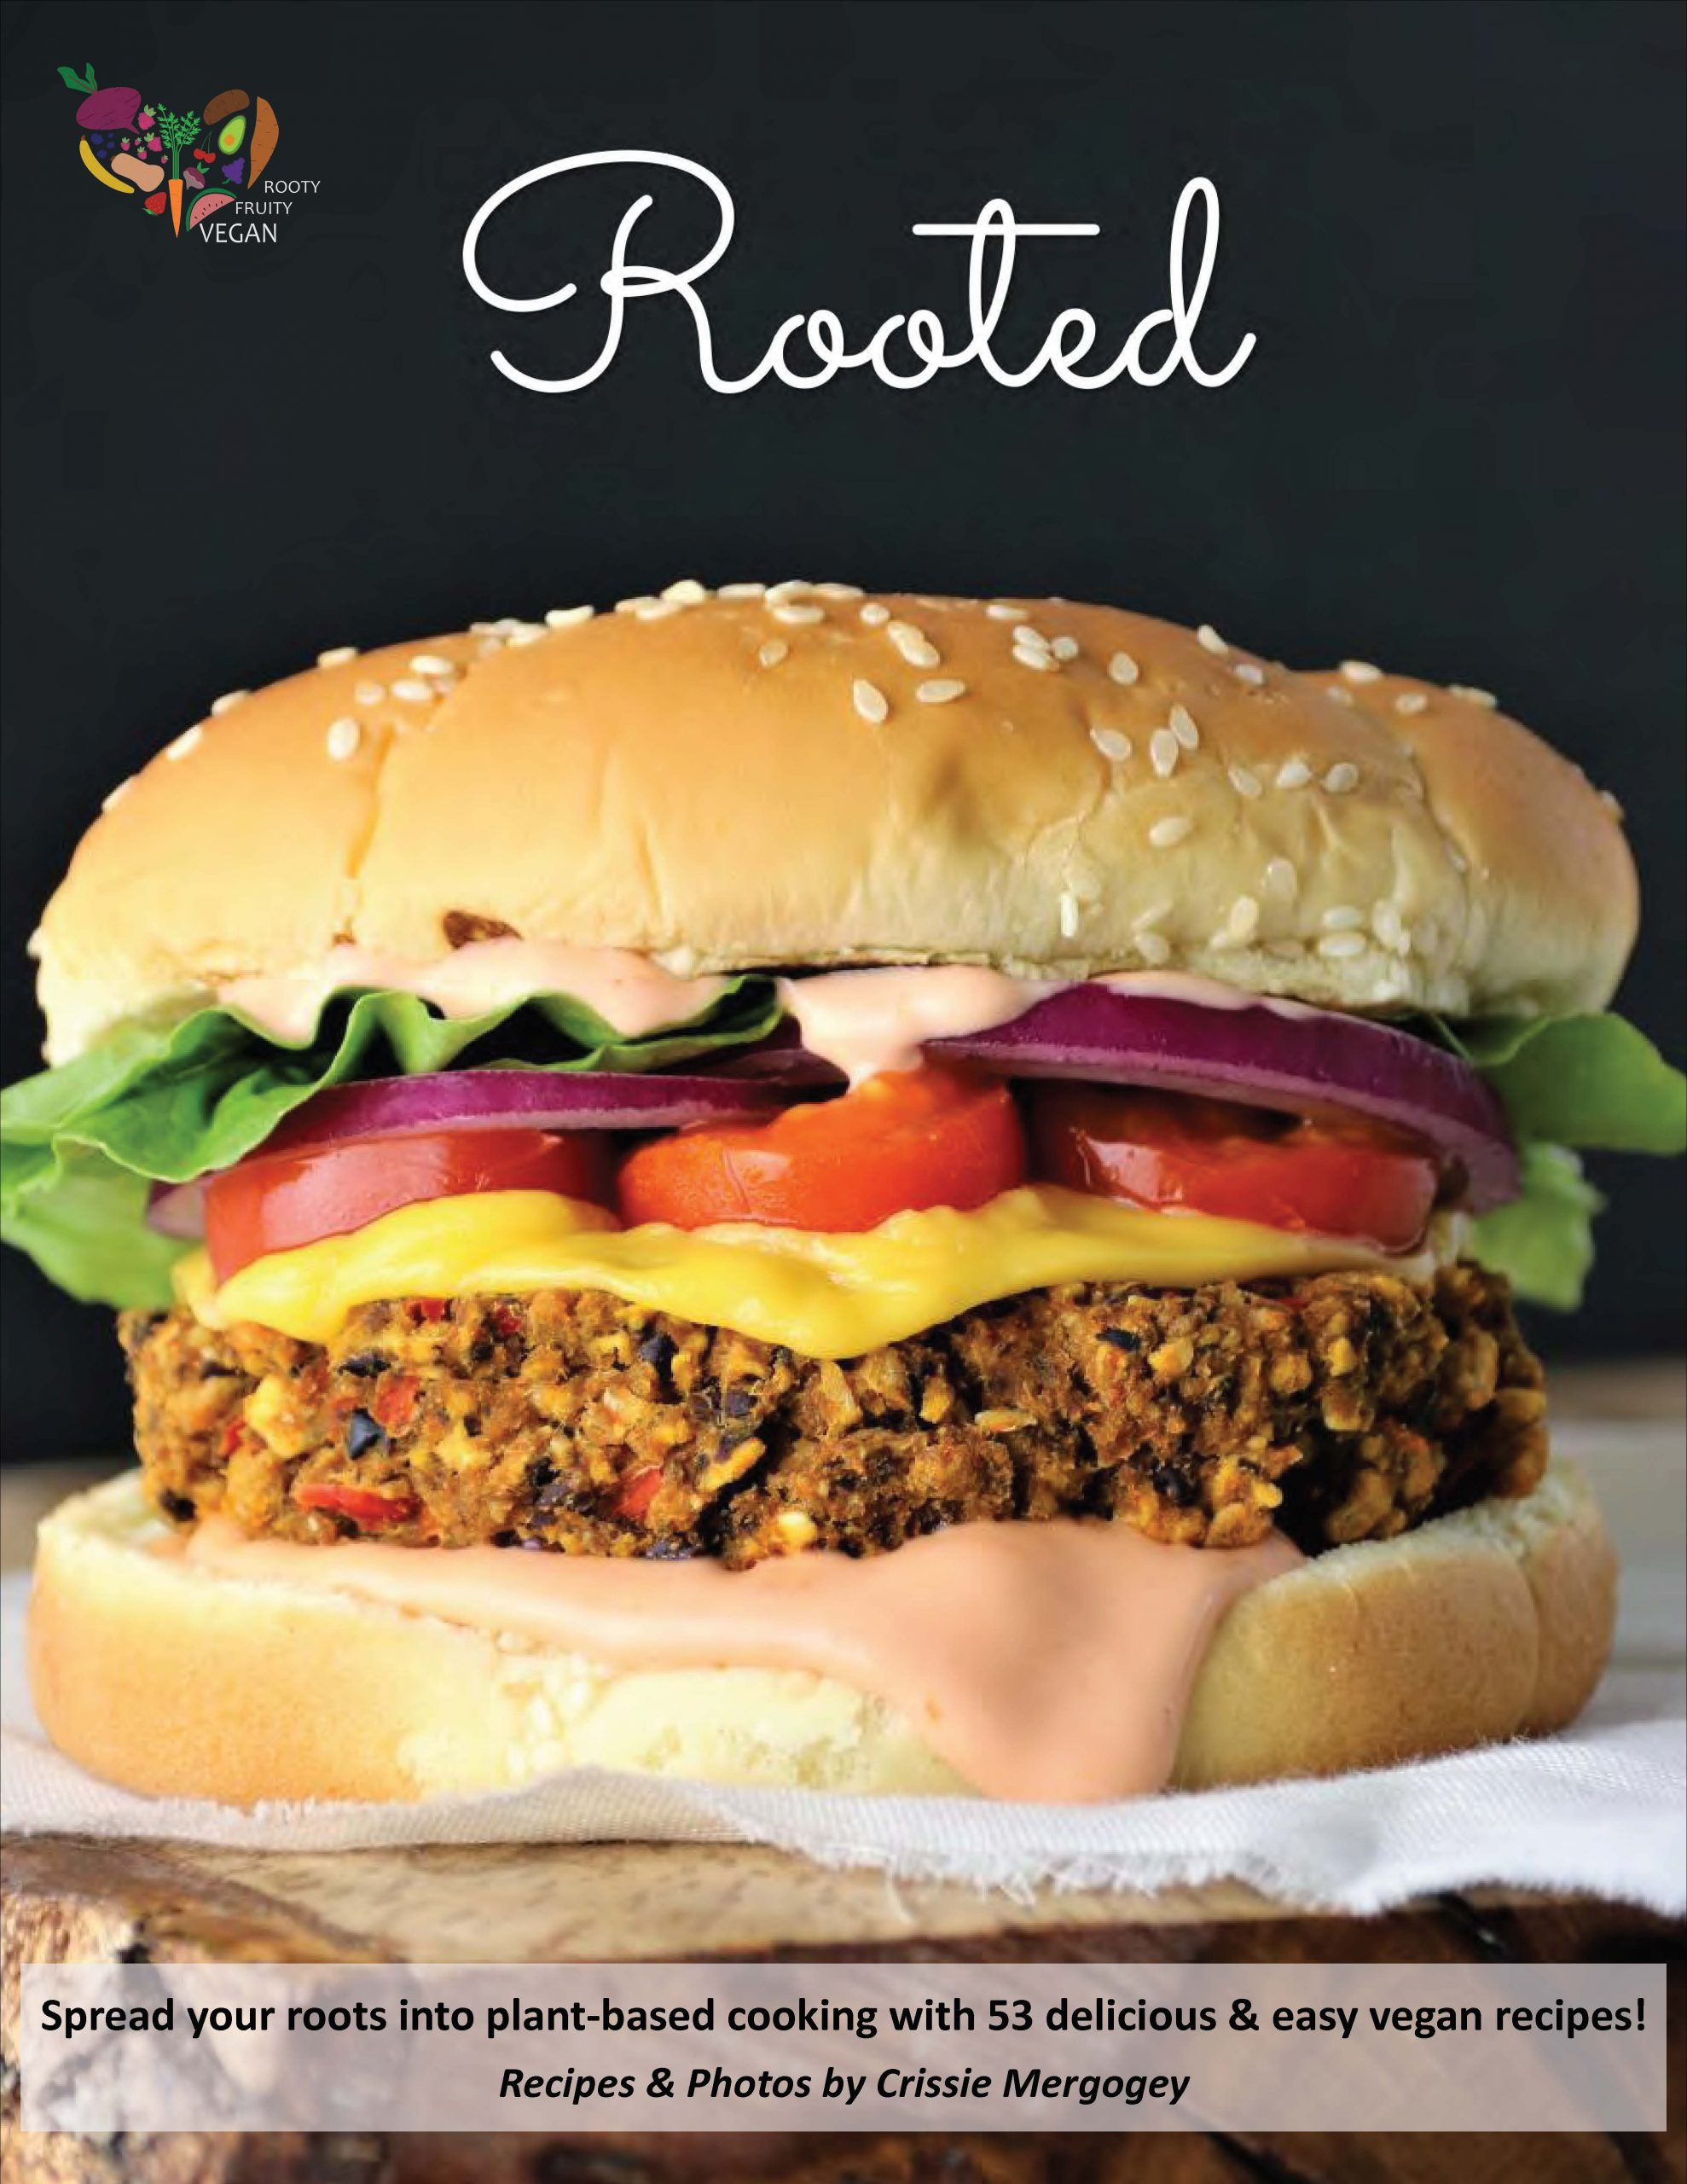 Rooty Fruity Vegan Cookbook Rooted Cover